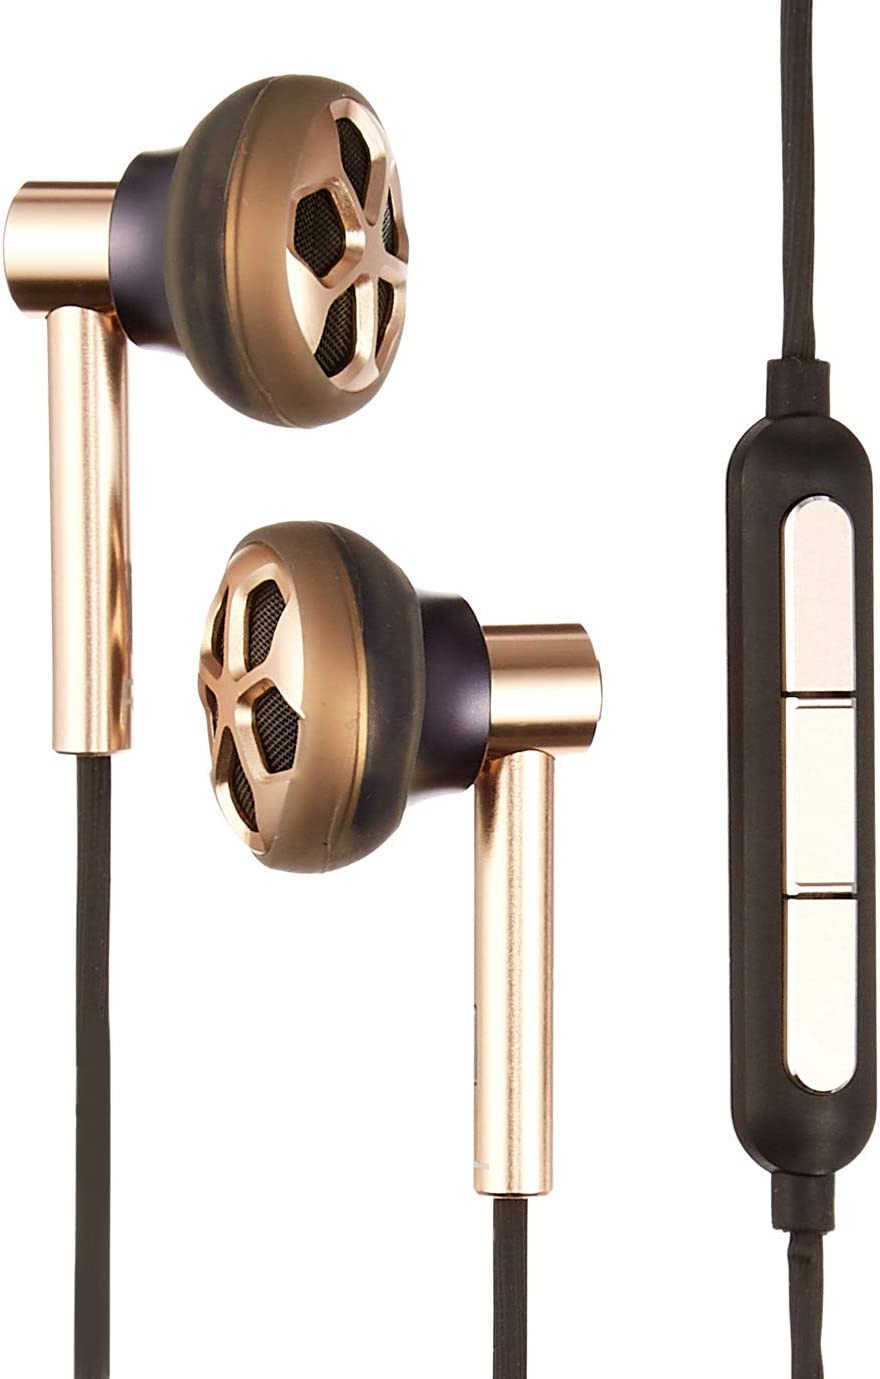 1MORE E1008 Sports Car Wheel Hub-Type Design Dual Dynamic Driver in-Ear Headphones with Microphone/Remote for Apple iOS & Android Gold